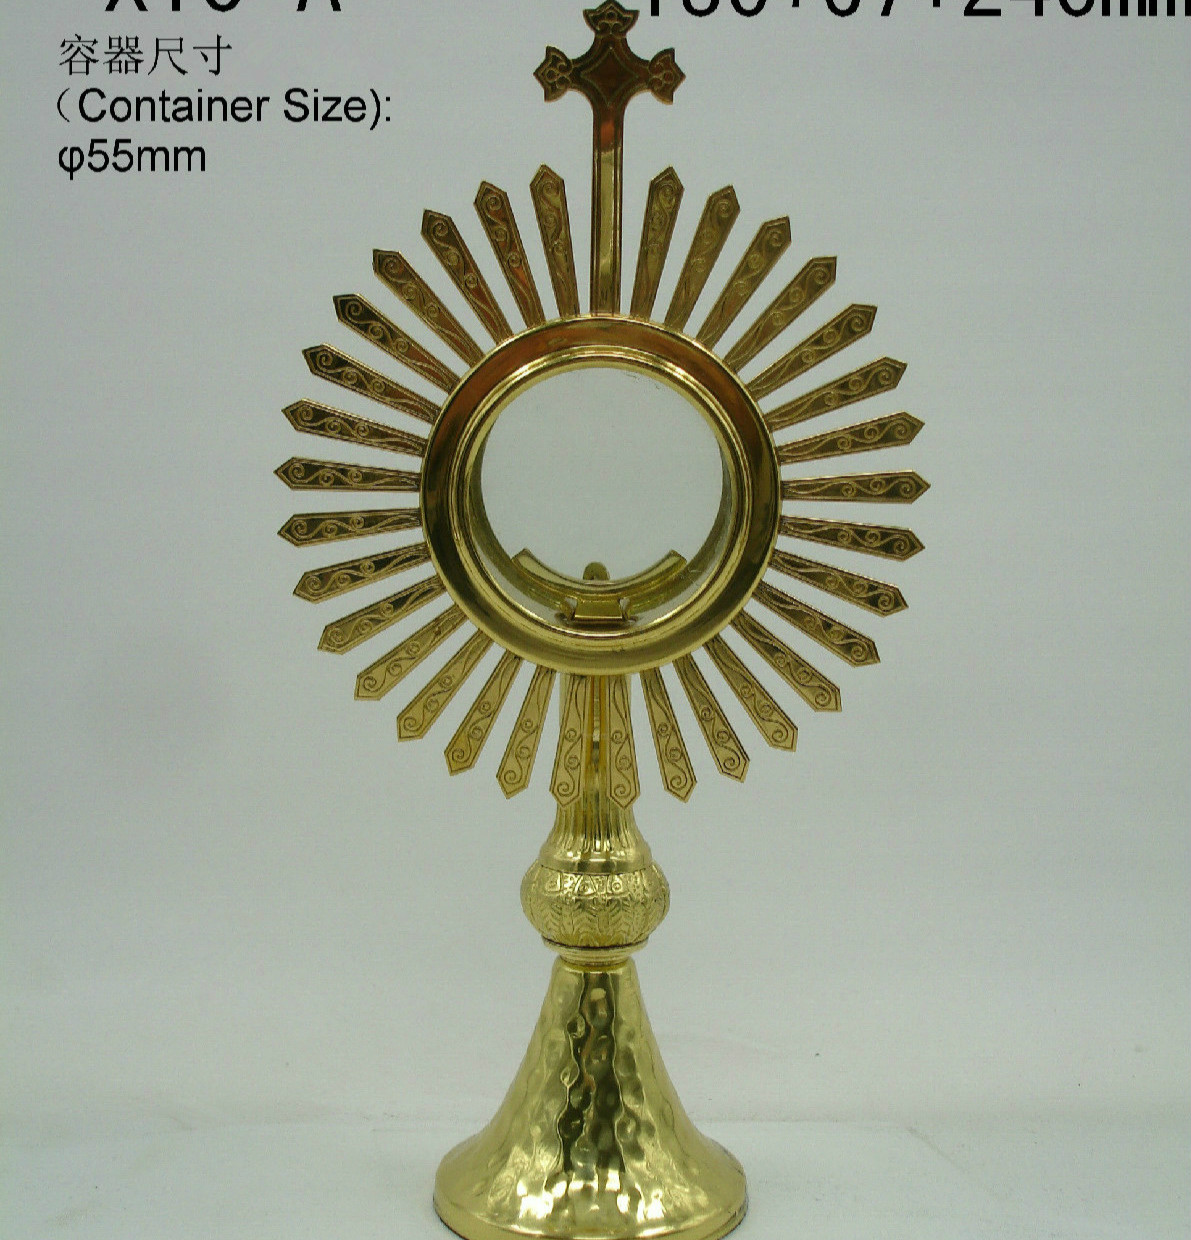 High Quality Ostensorium Holy Reliquary Catholic Supplies Church Sacrament Exquisite Elegance Monstrance Holy Box Jesus Lord's